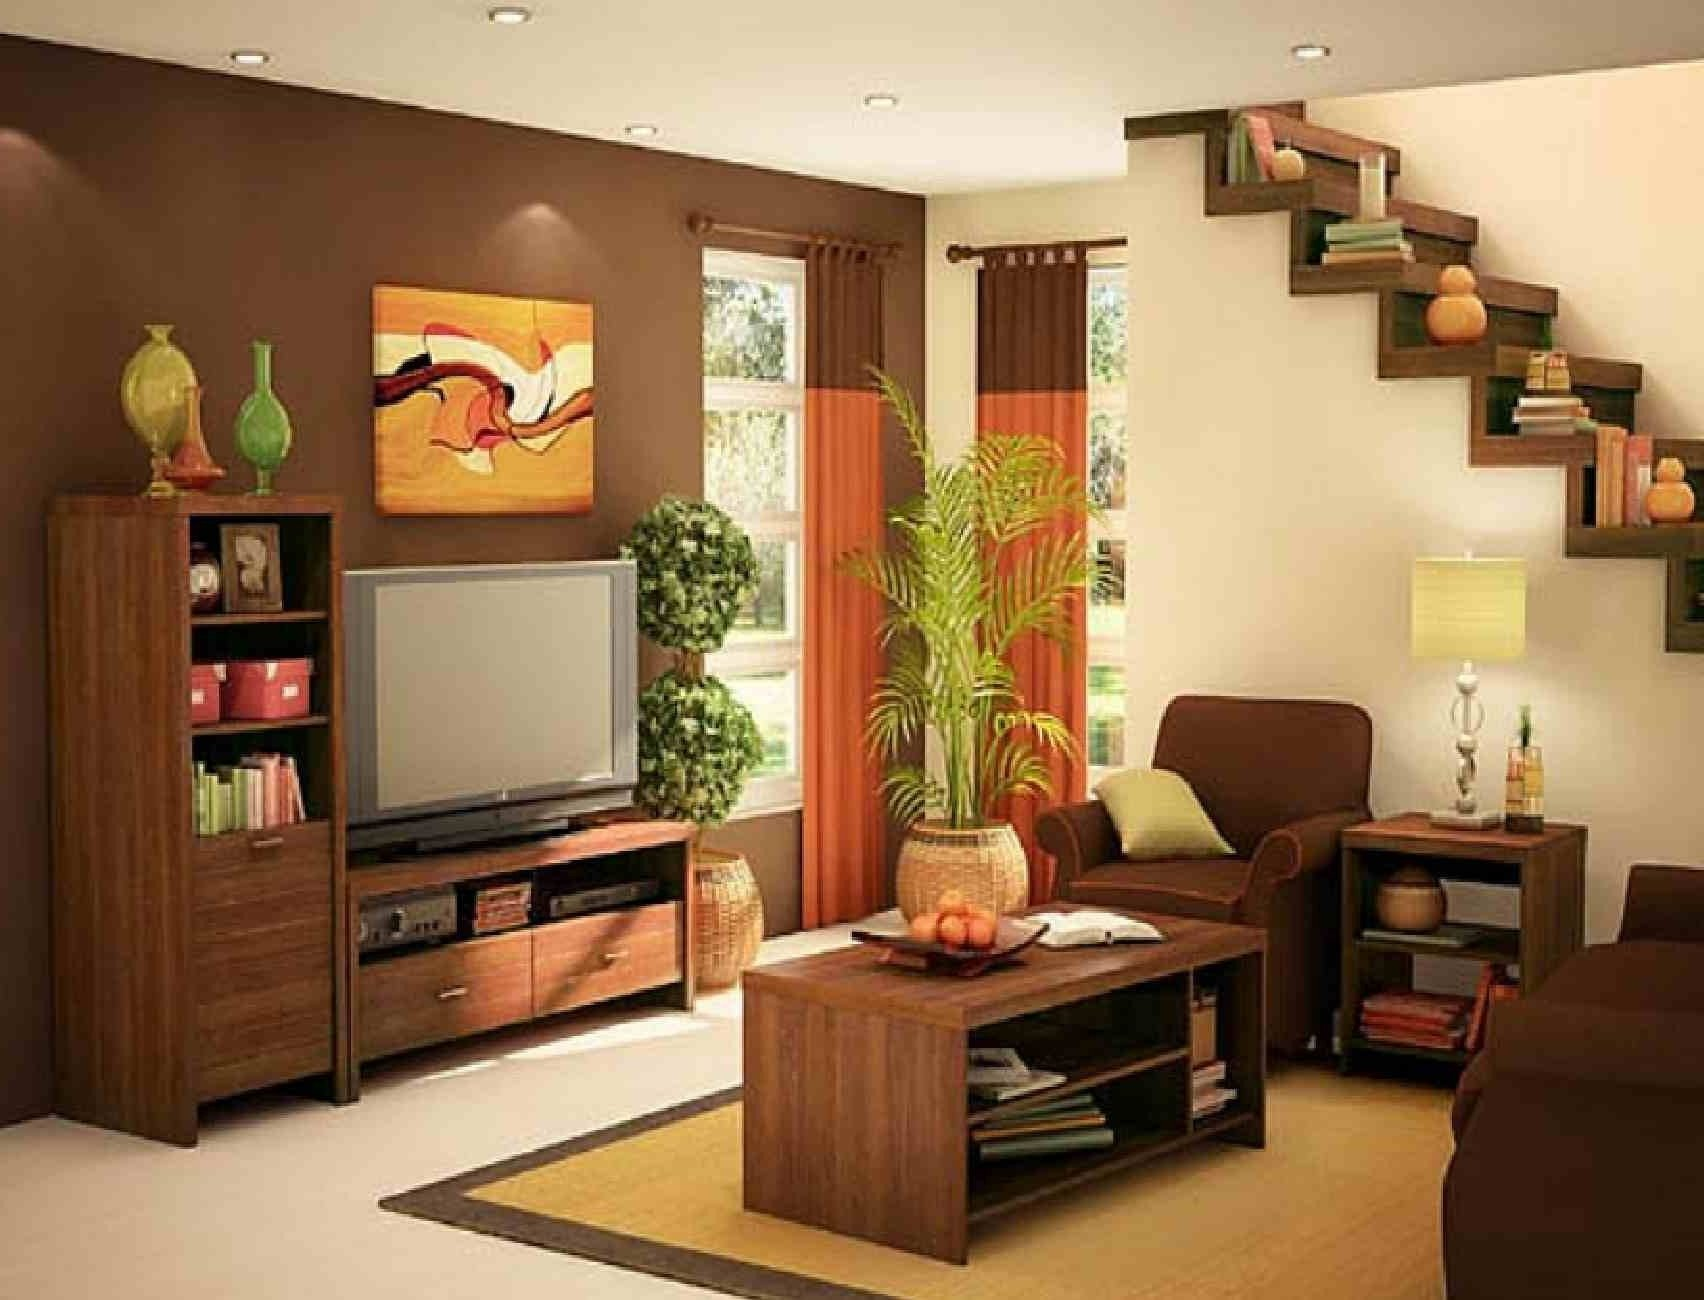 Simple Modern Living Room Decorating Ideas 24 Simple Design for Living Room Appealing Simple Home